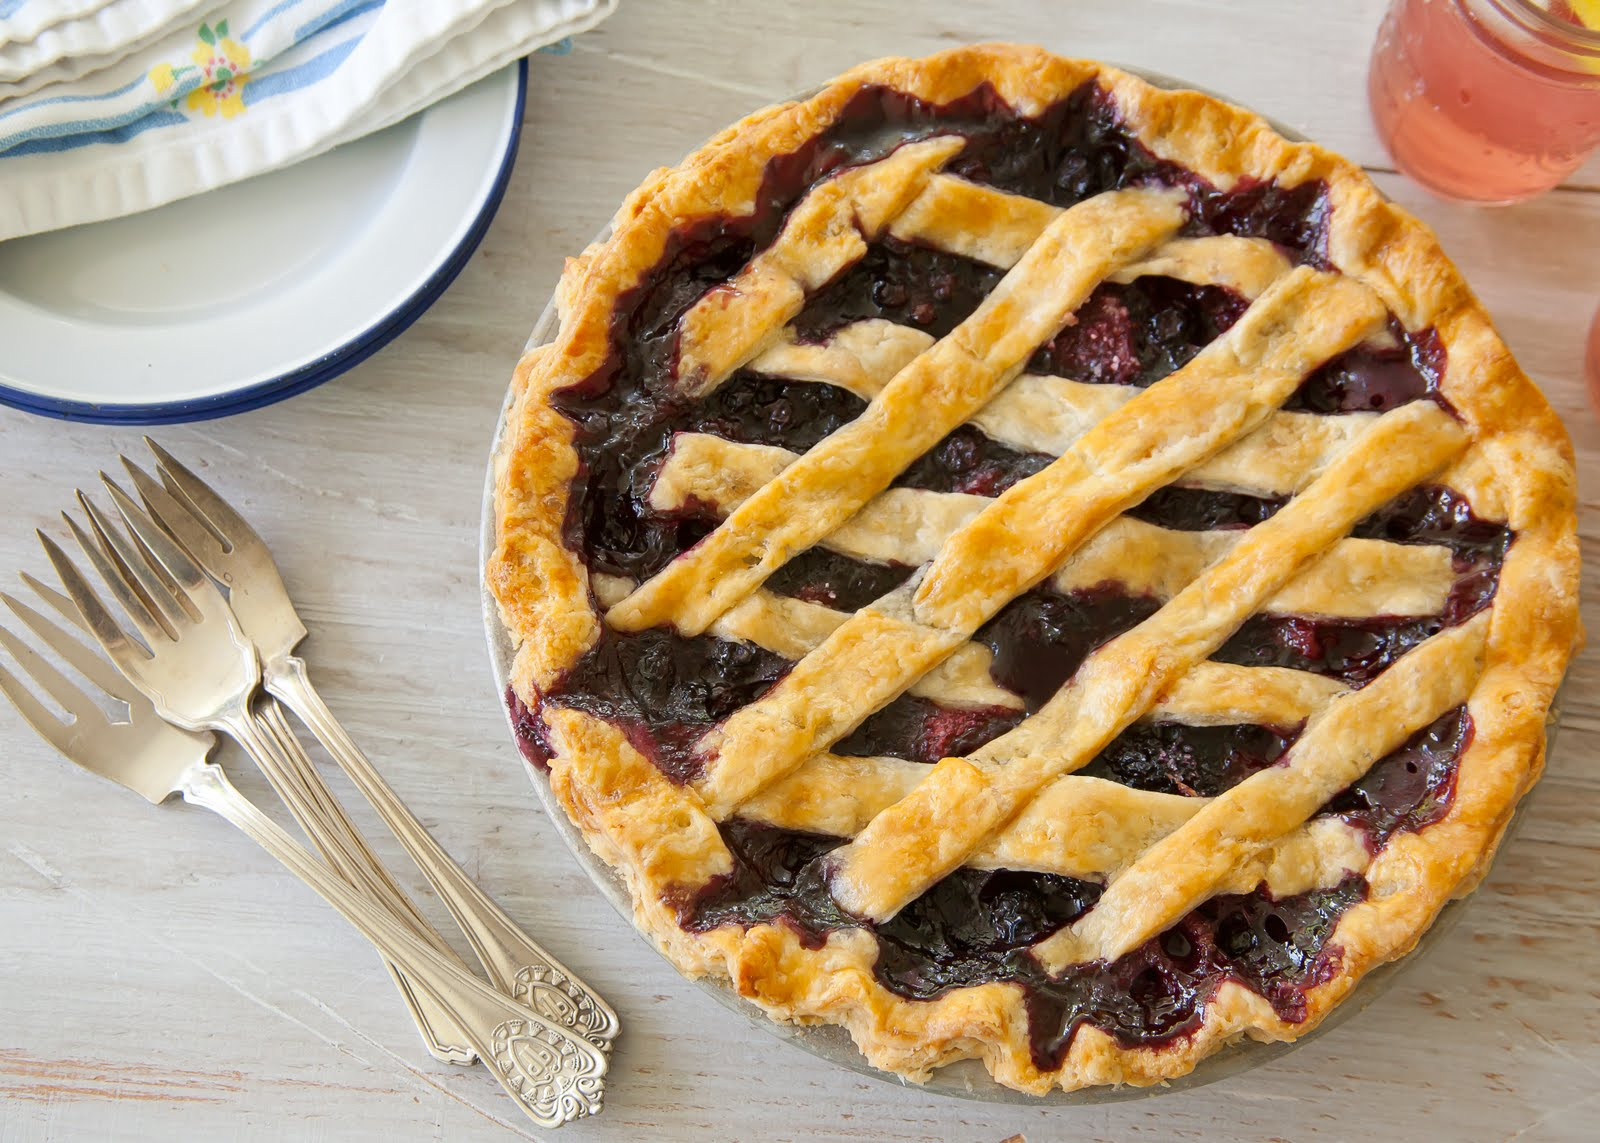 Pie Recipes For Great American Pie Month